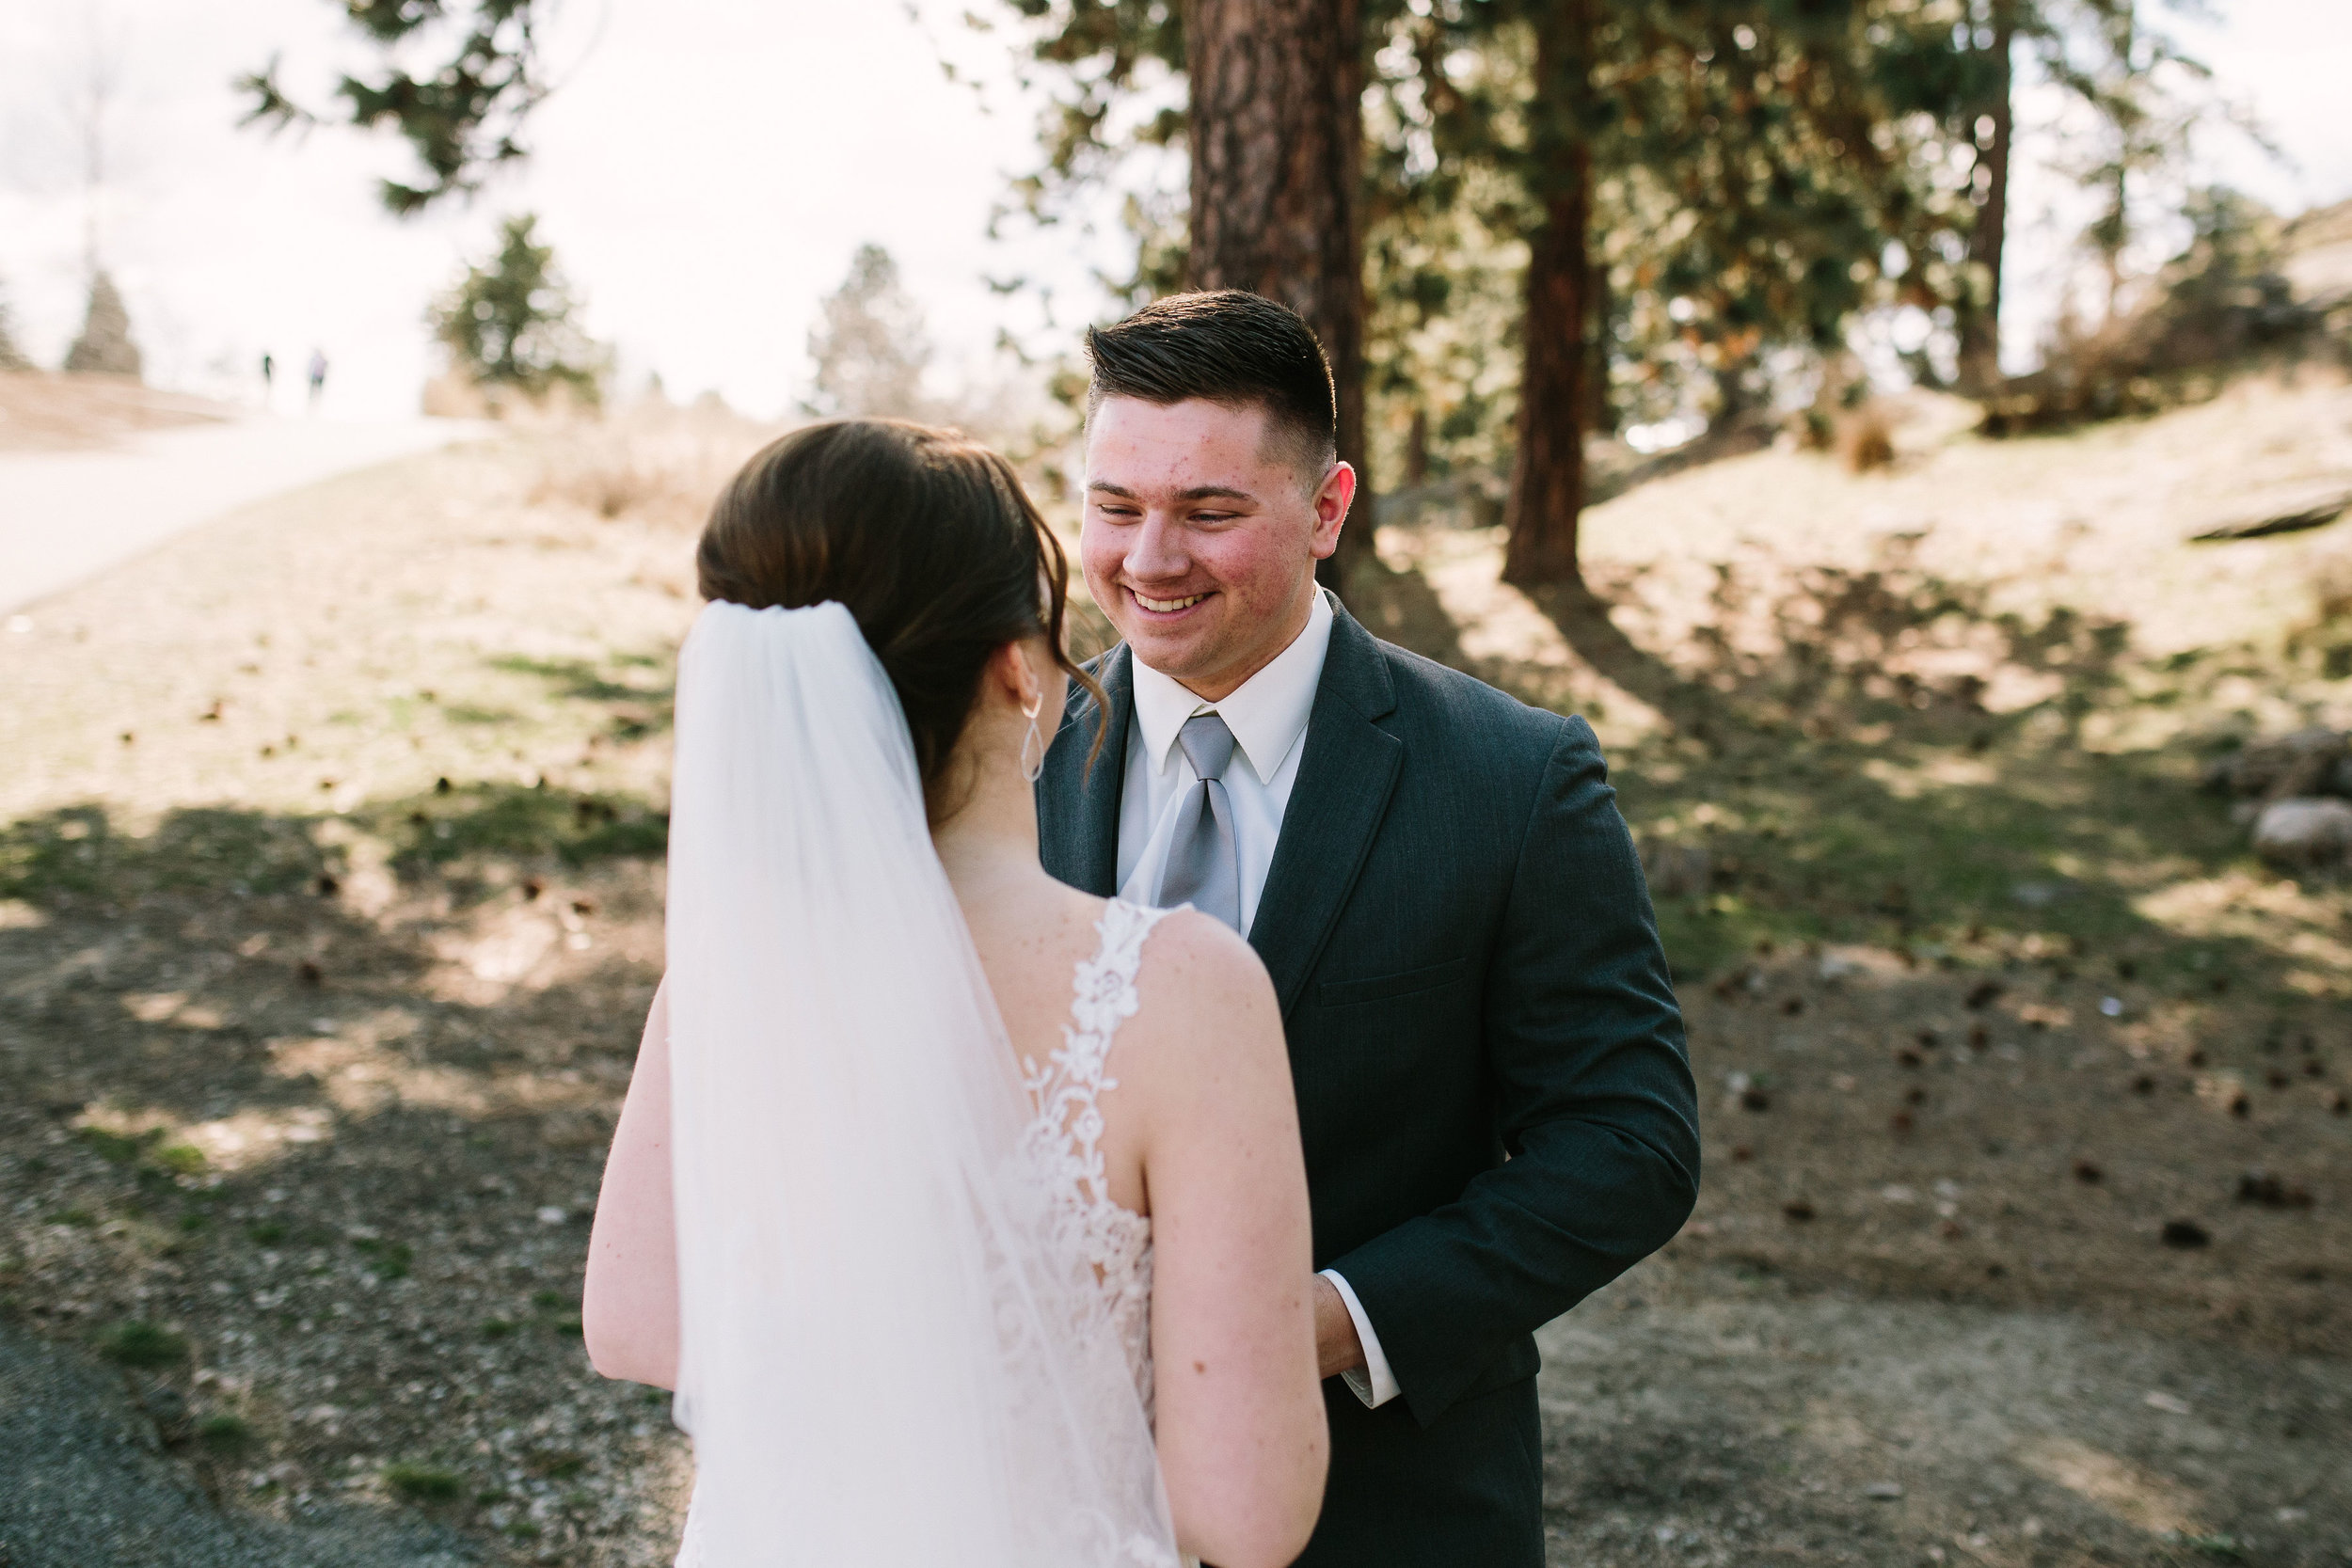 Fun Rustic spokane wedding bride and groom holding hands smiling at each other